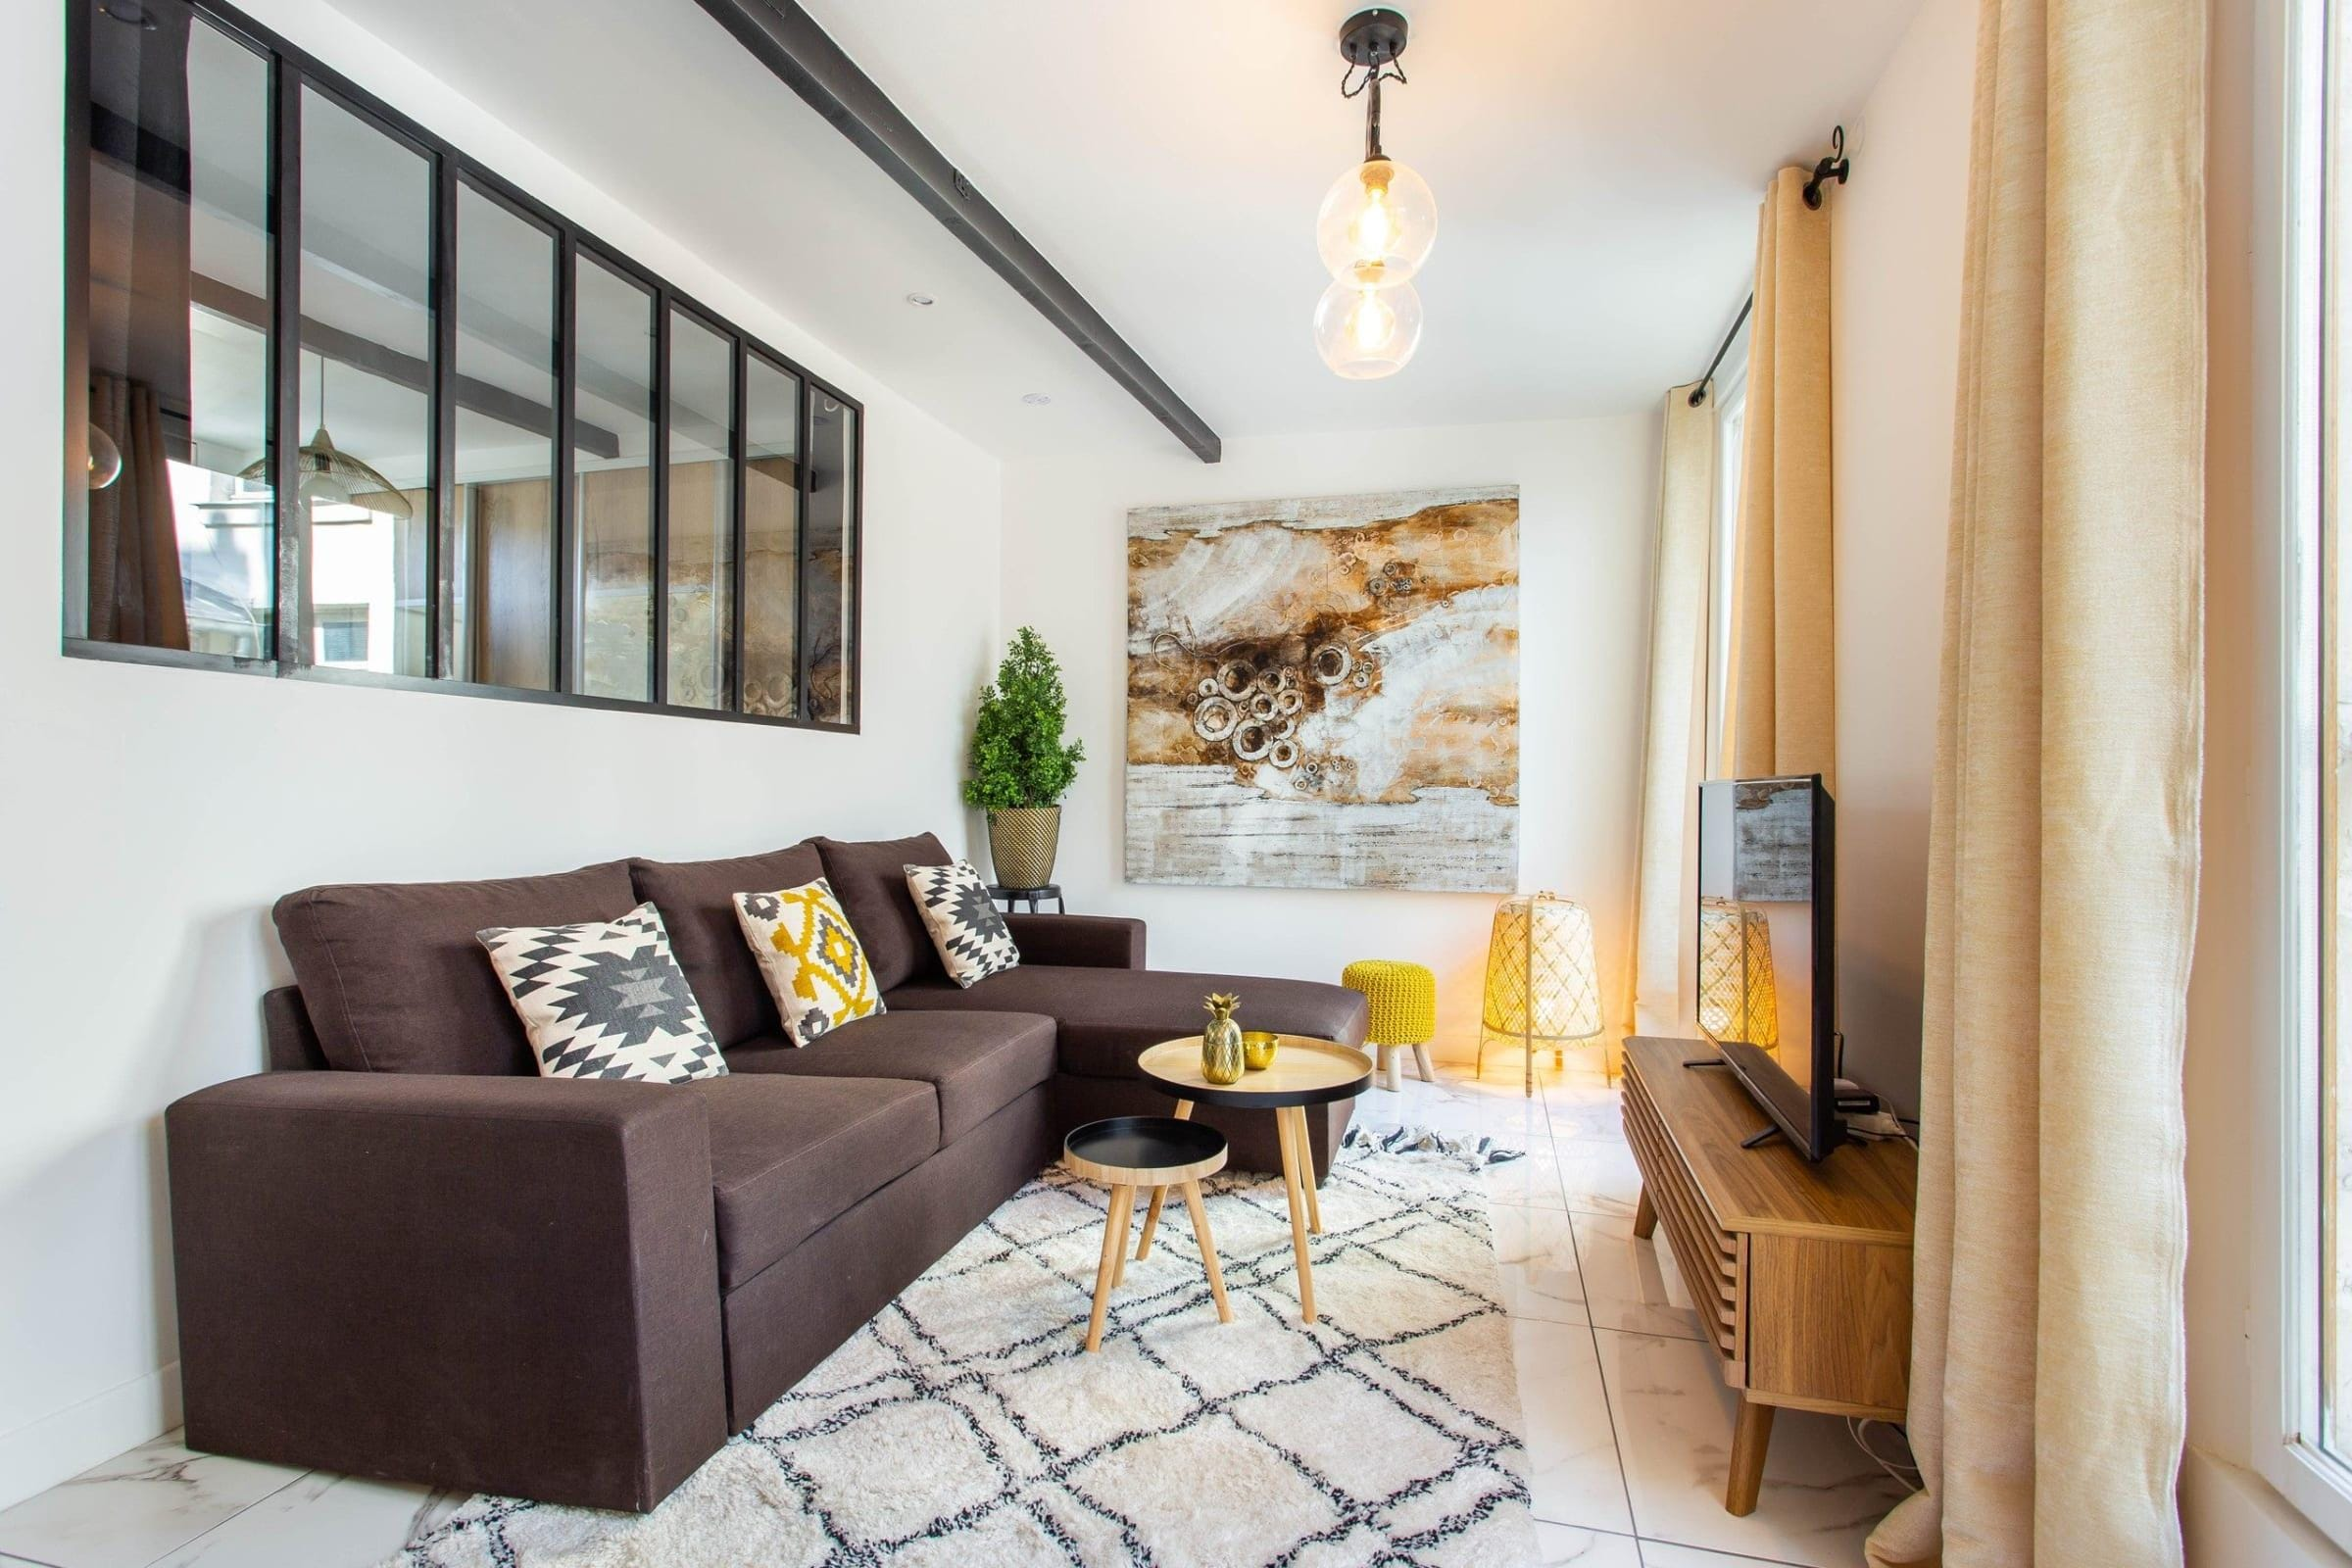 Montorgueil Fourth Floor Modern and Vibrant Apartment